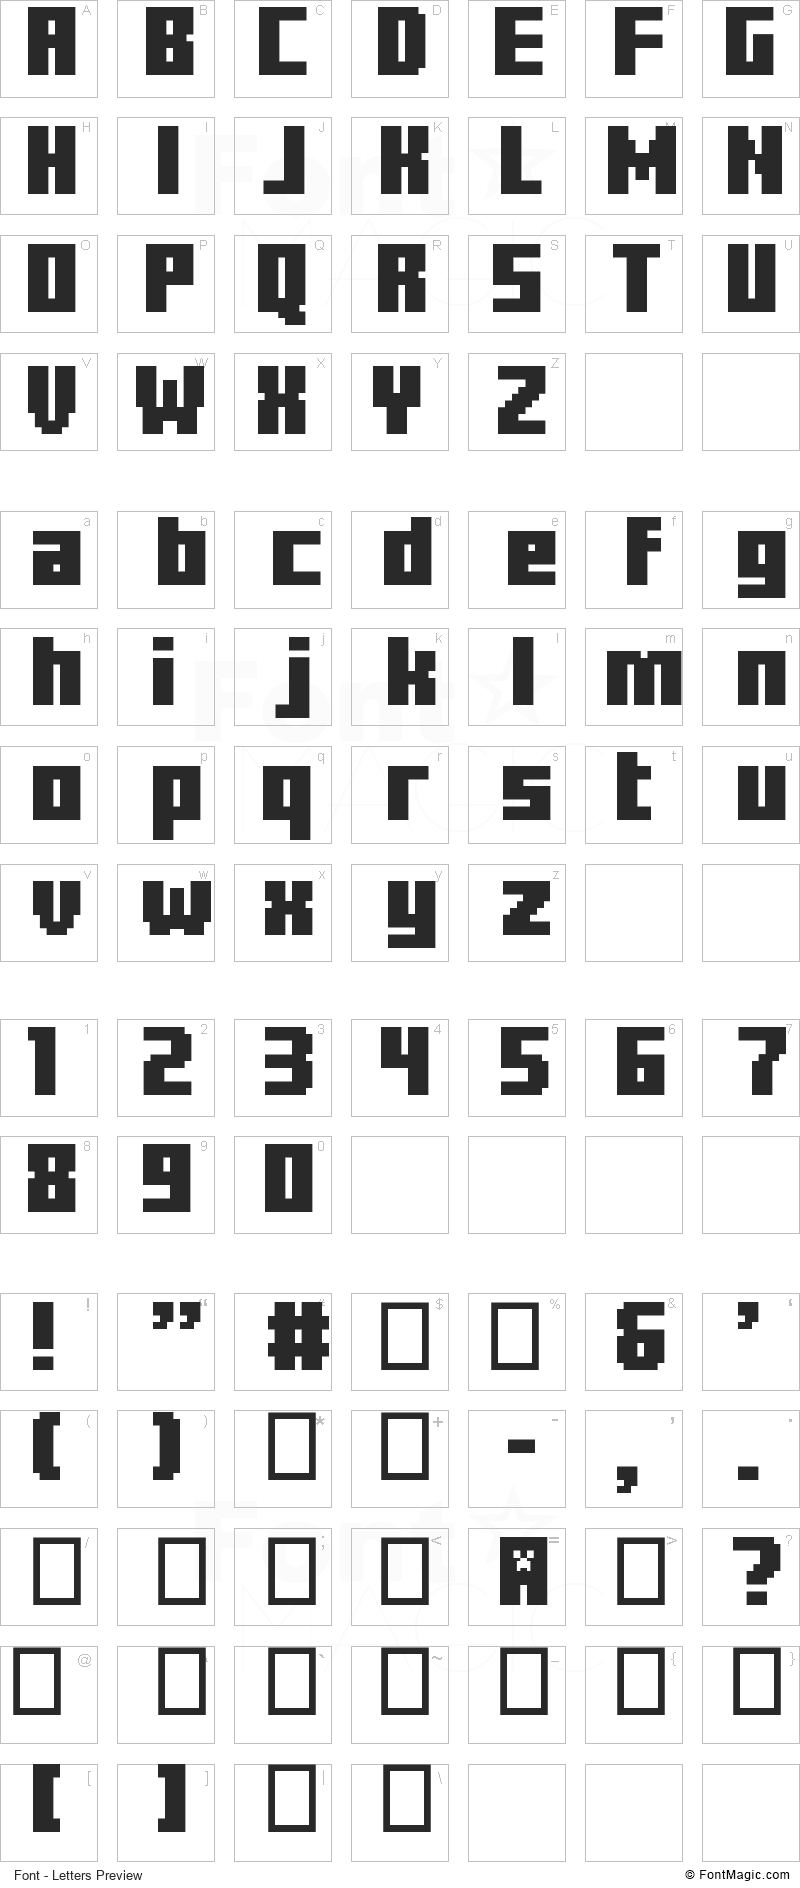 Minercraftory Font - All Latters Preview Chart